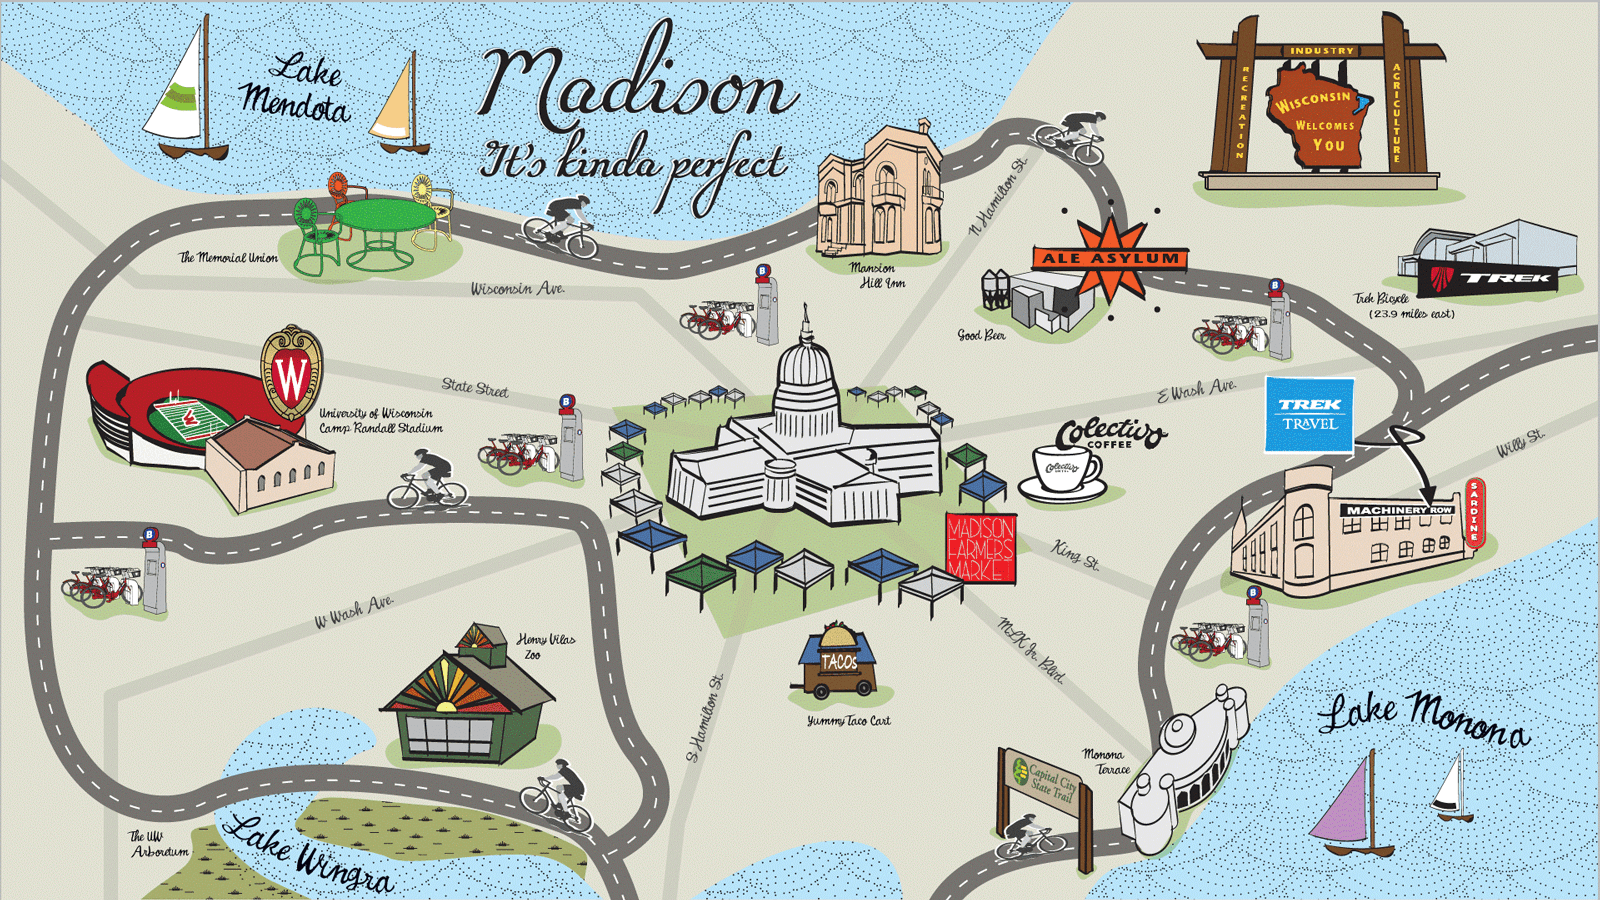 Map of Madison, Wisconsin by Trek Travel